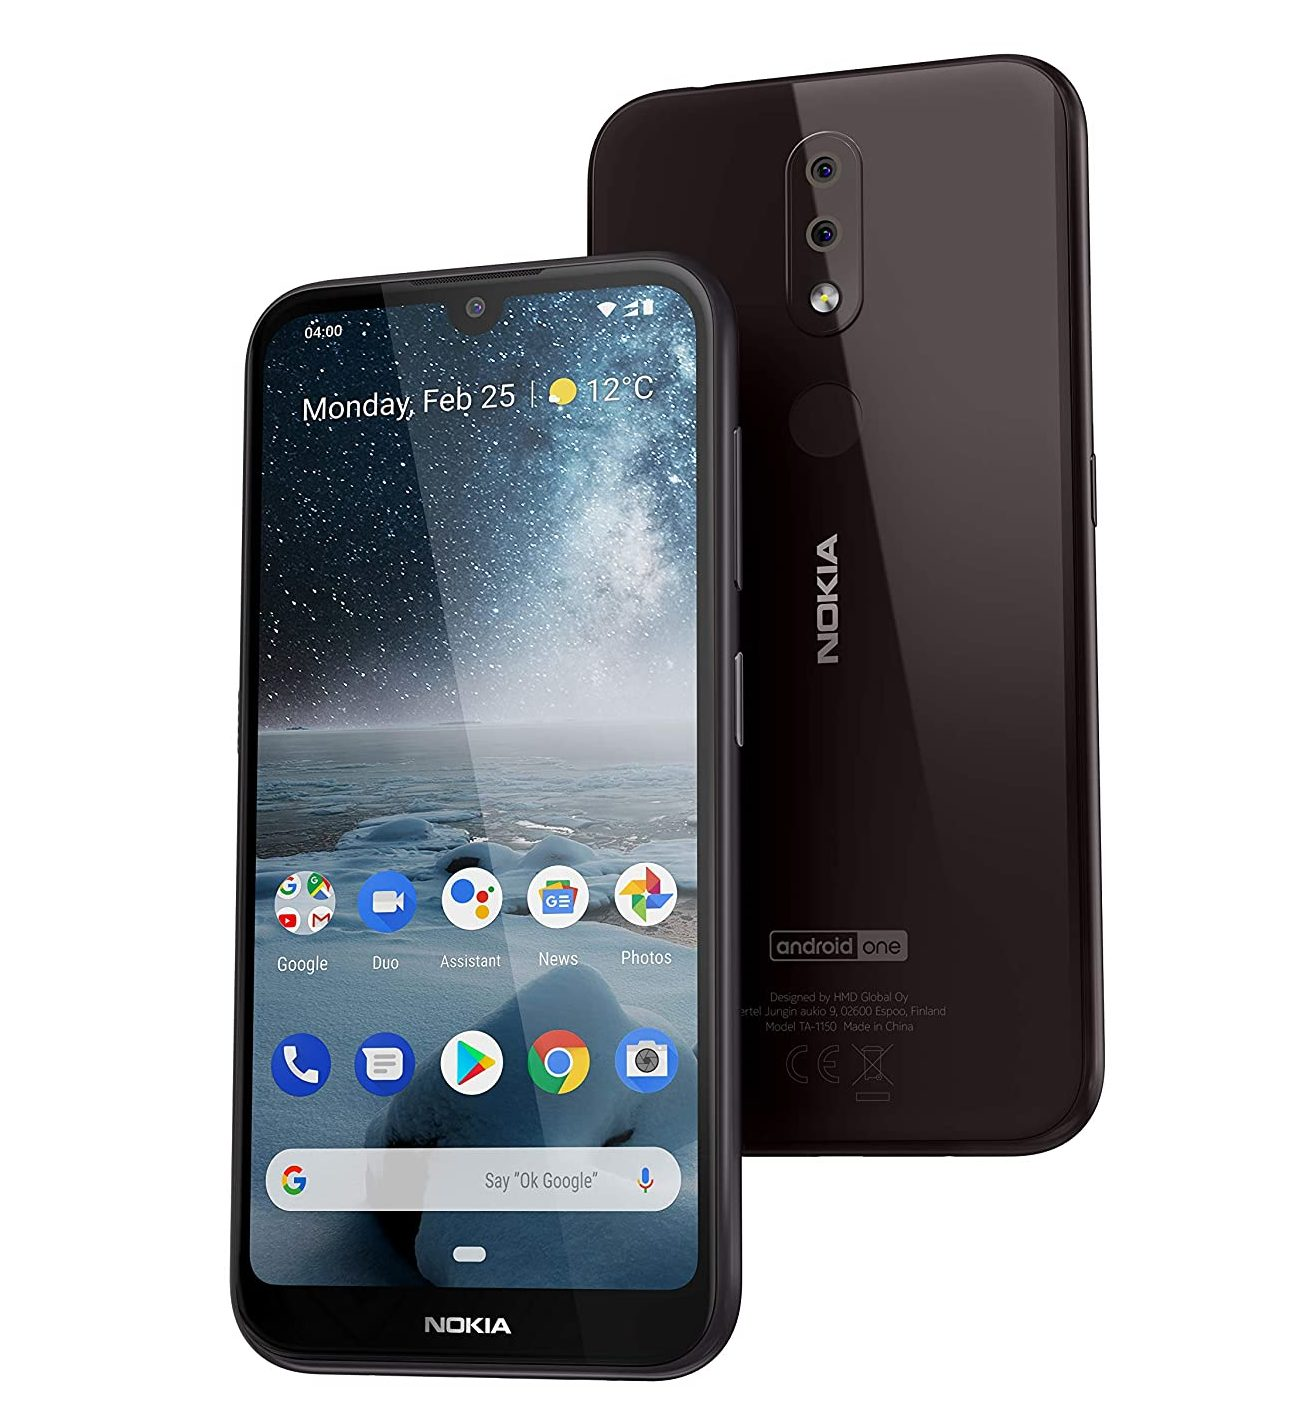 Nokia 4.2 [3GB RAM, 32GB Internal]- best phone under 11000 in India 12000-2020